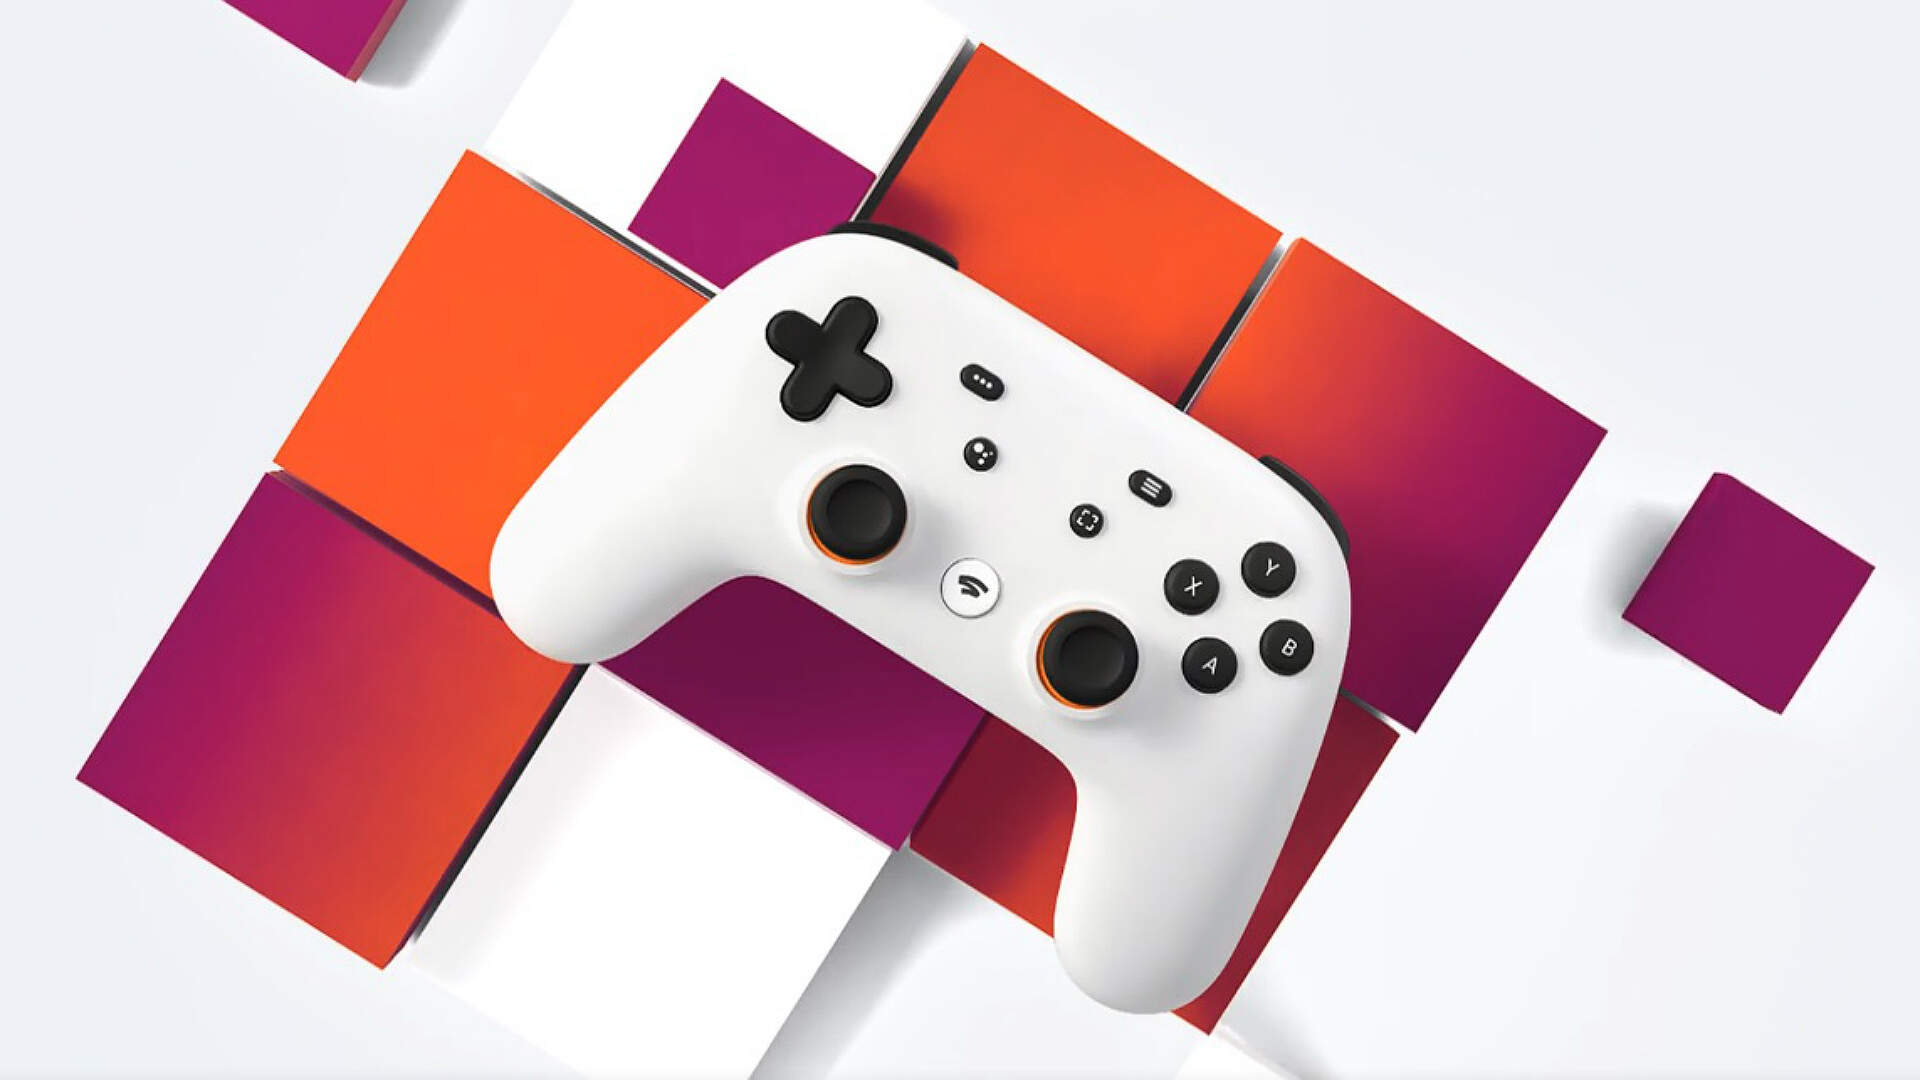 Google Sets Stadia's Official Launch Date and Shows Off Its UI